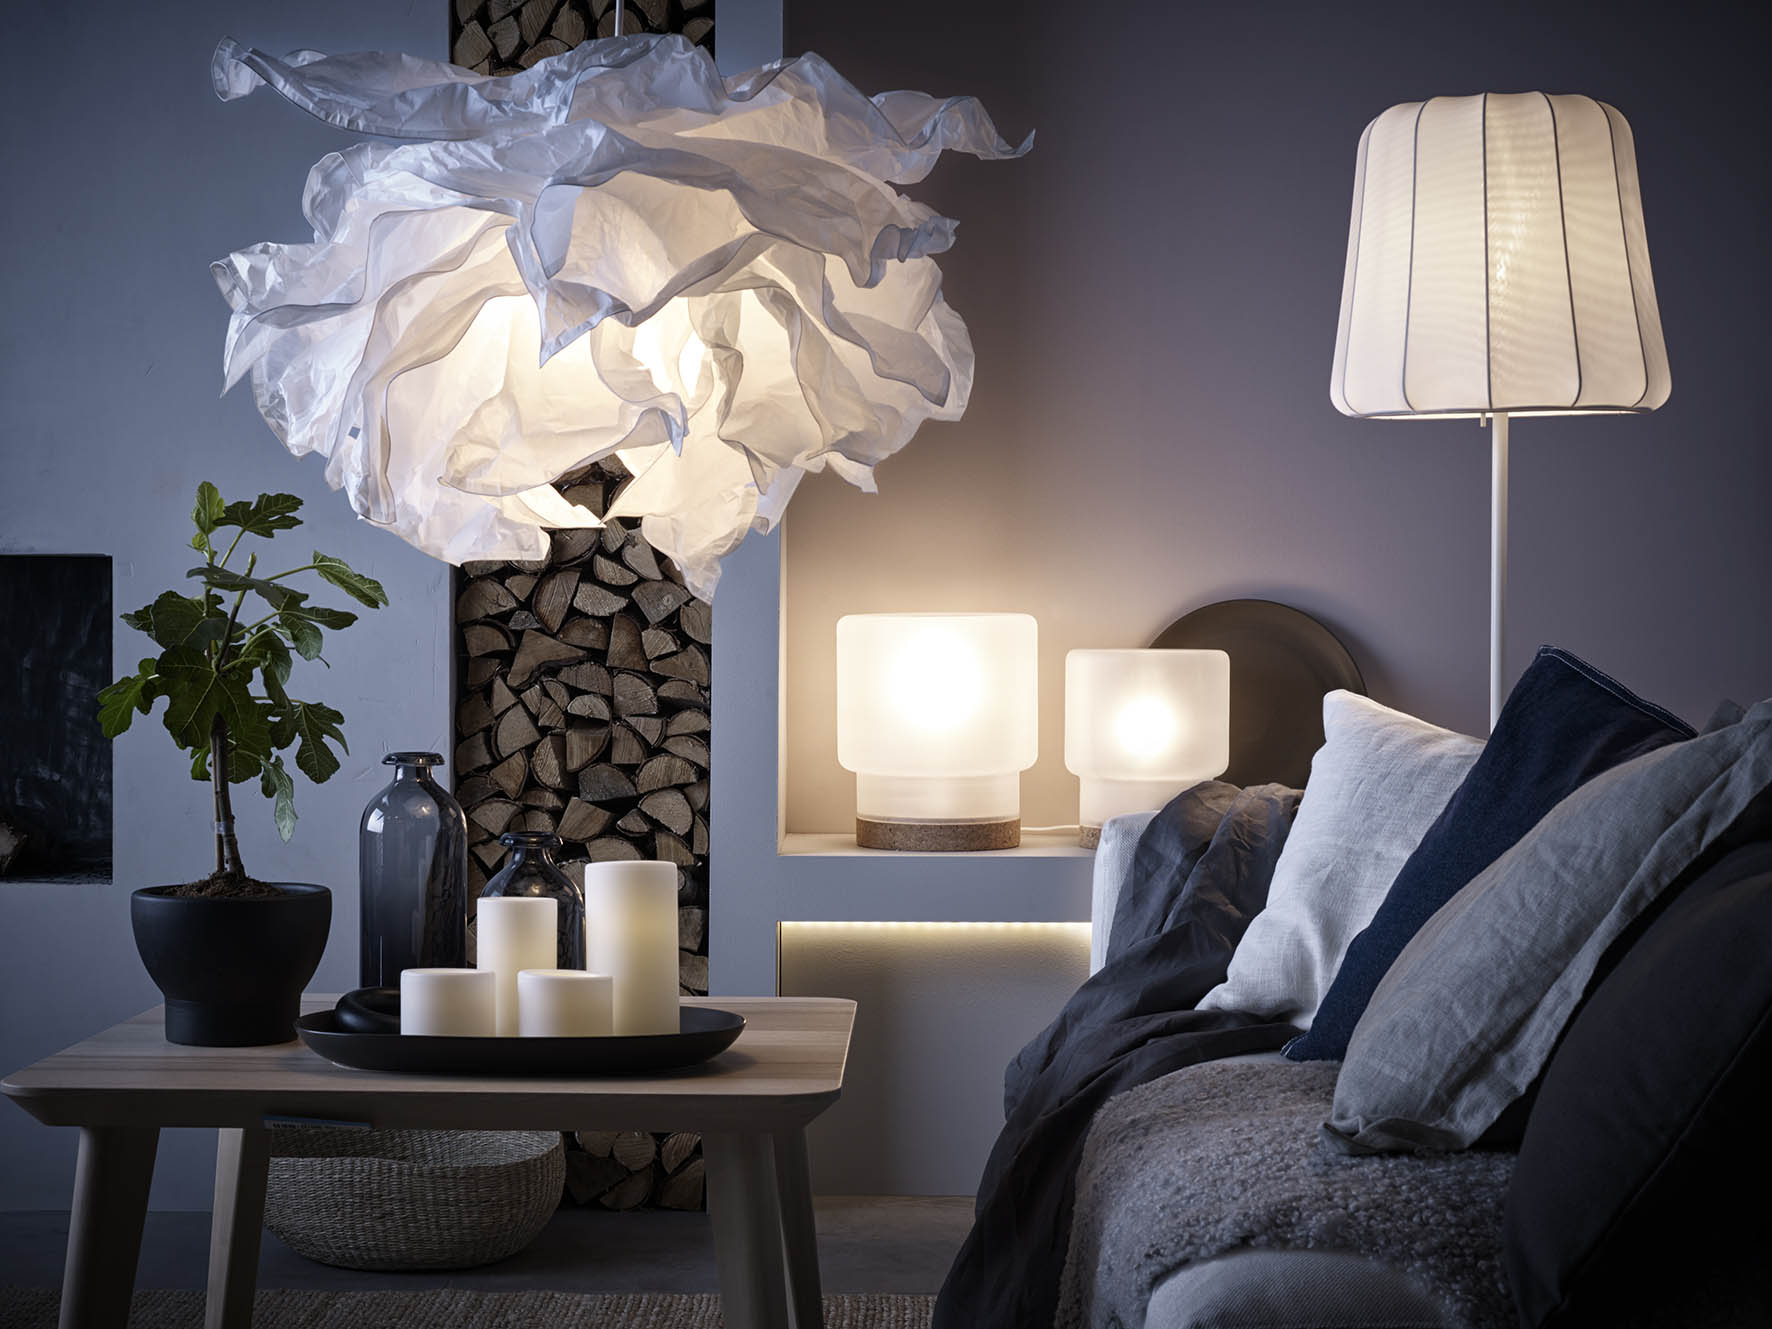 ikea schakelt over op verkoop milieuvriendelijke led. Black Bedroom Furniture Sets. Home Design Ideas